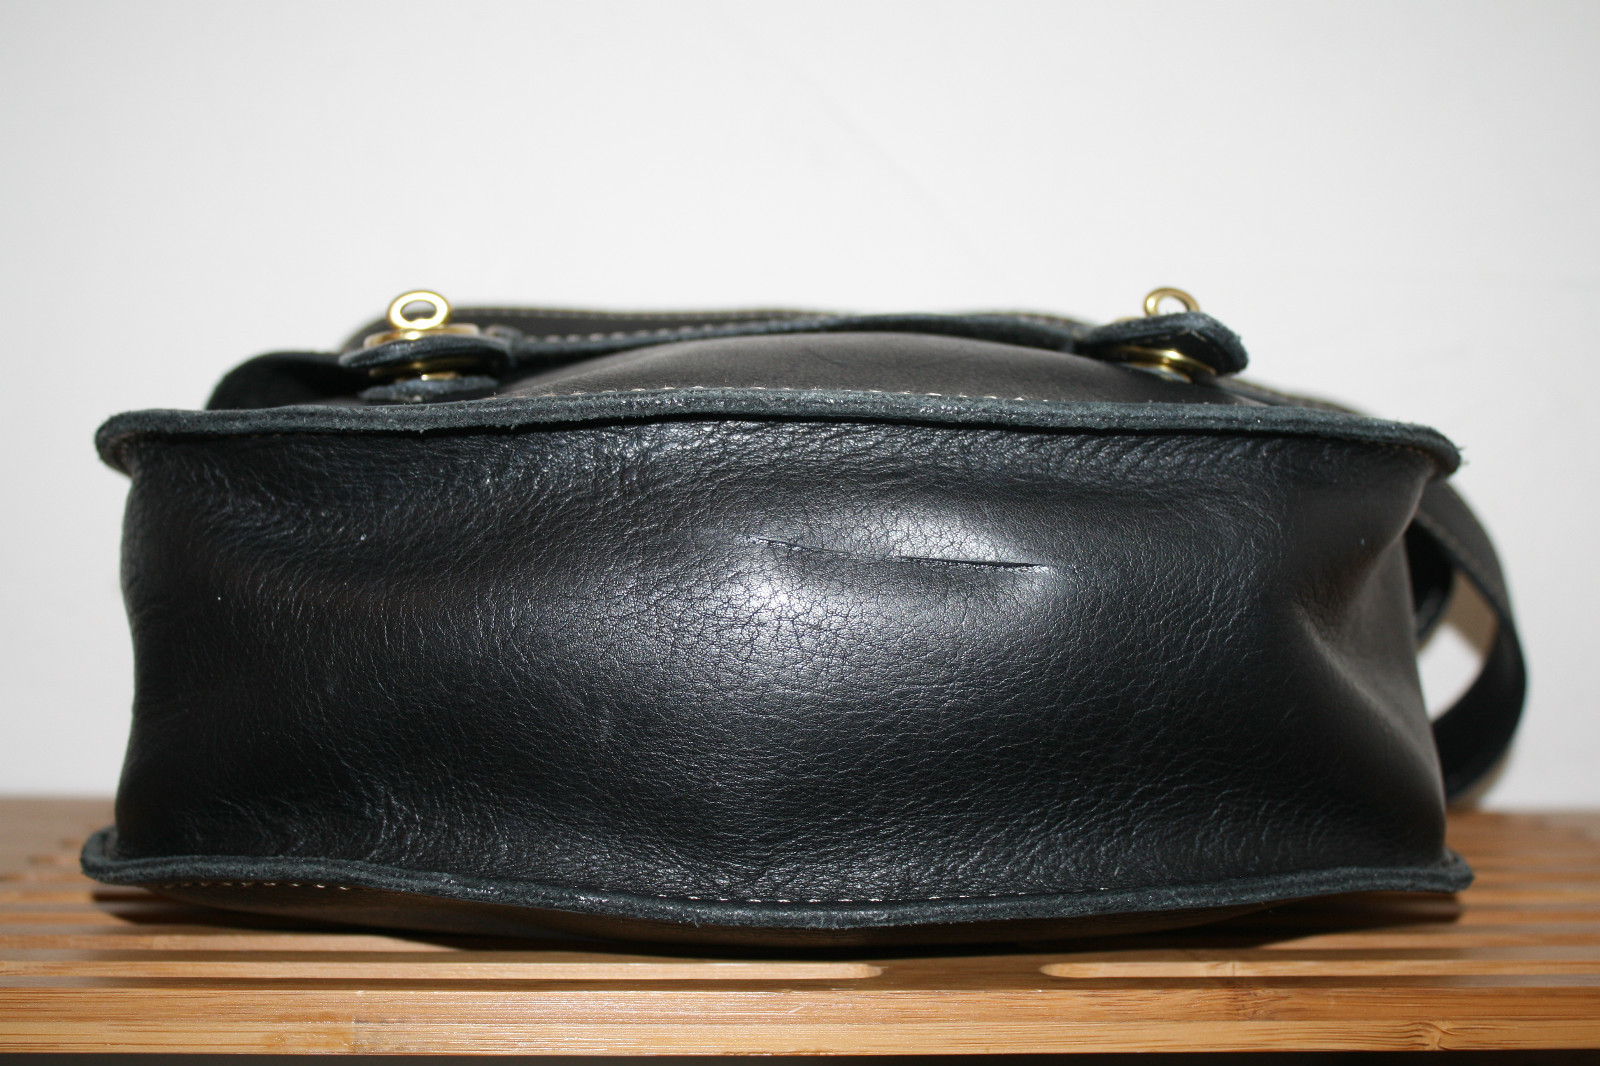 Restoring Antique Leather La Vie Diy Buying And Restoring Second Hand Bags